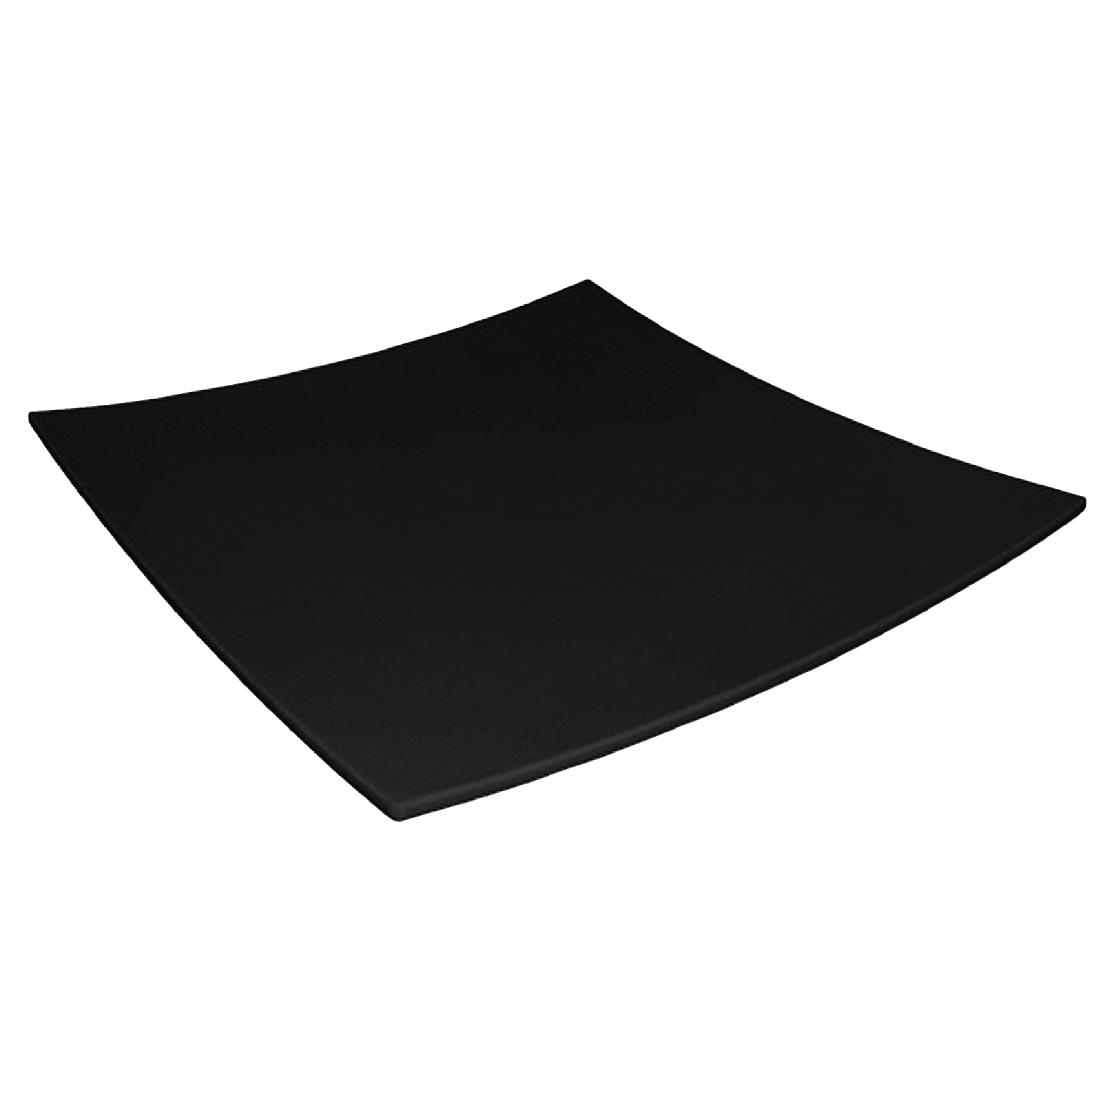 Image of Curved Square Melamine Plate Black 400mm